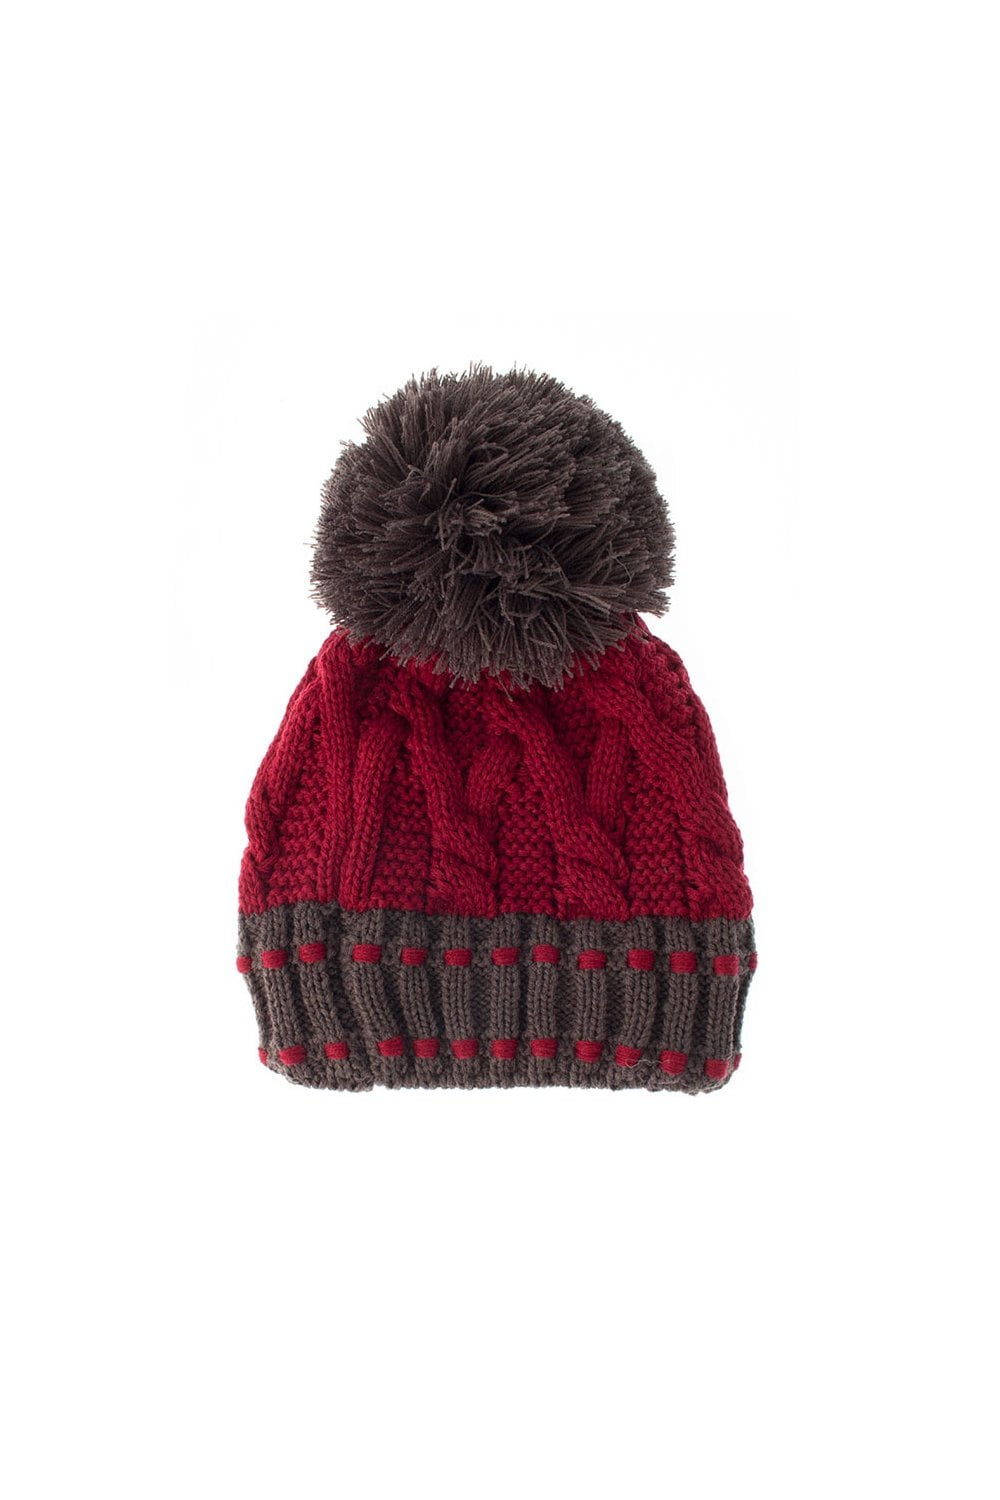 3f9ee921b0524 Dents Womens Chunky Cable Knit Hat - Claret Charcoal - Womenswear ...